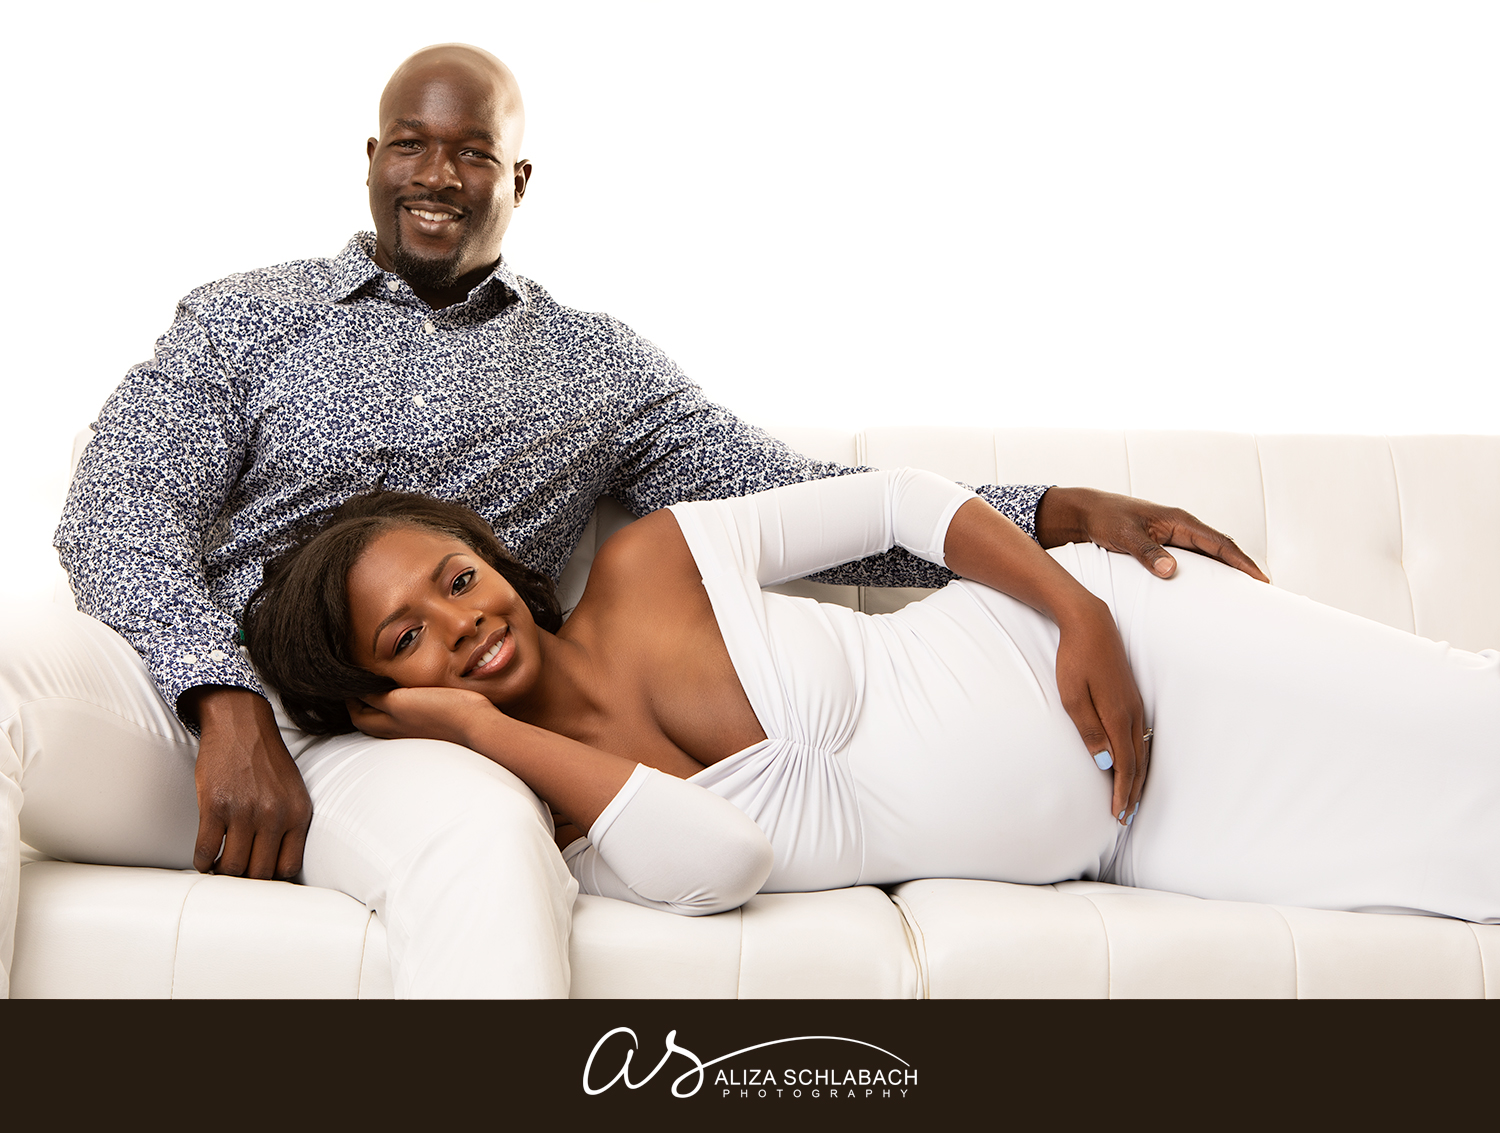 Backlit photo of a black pregnant woman in a white dress with her handsome husband